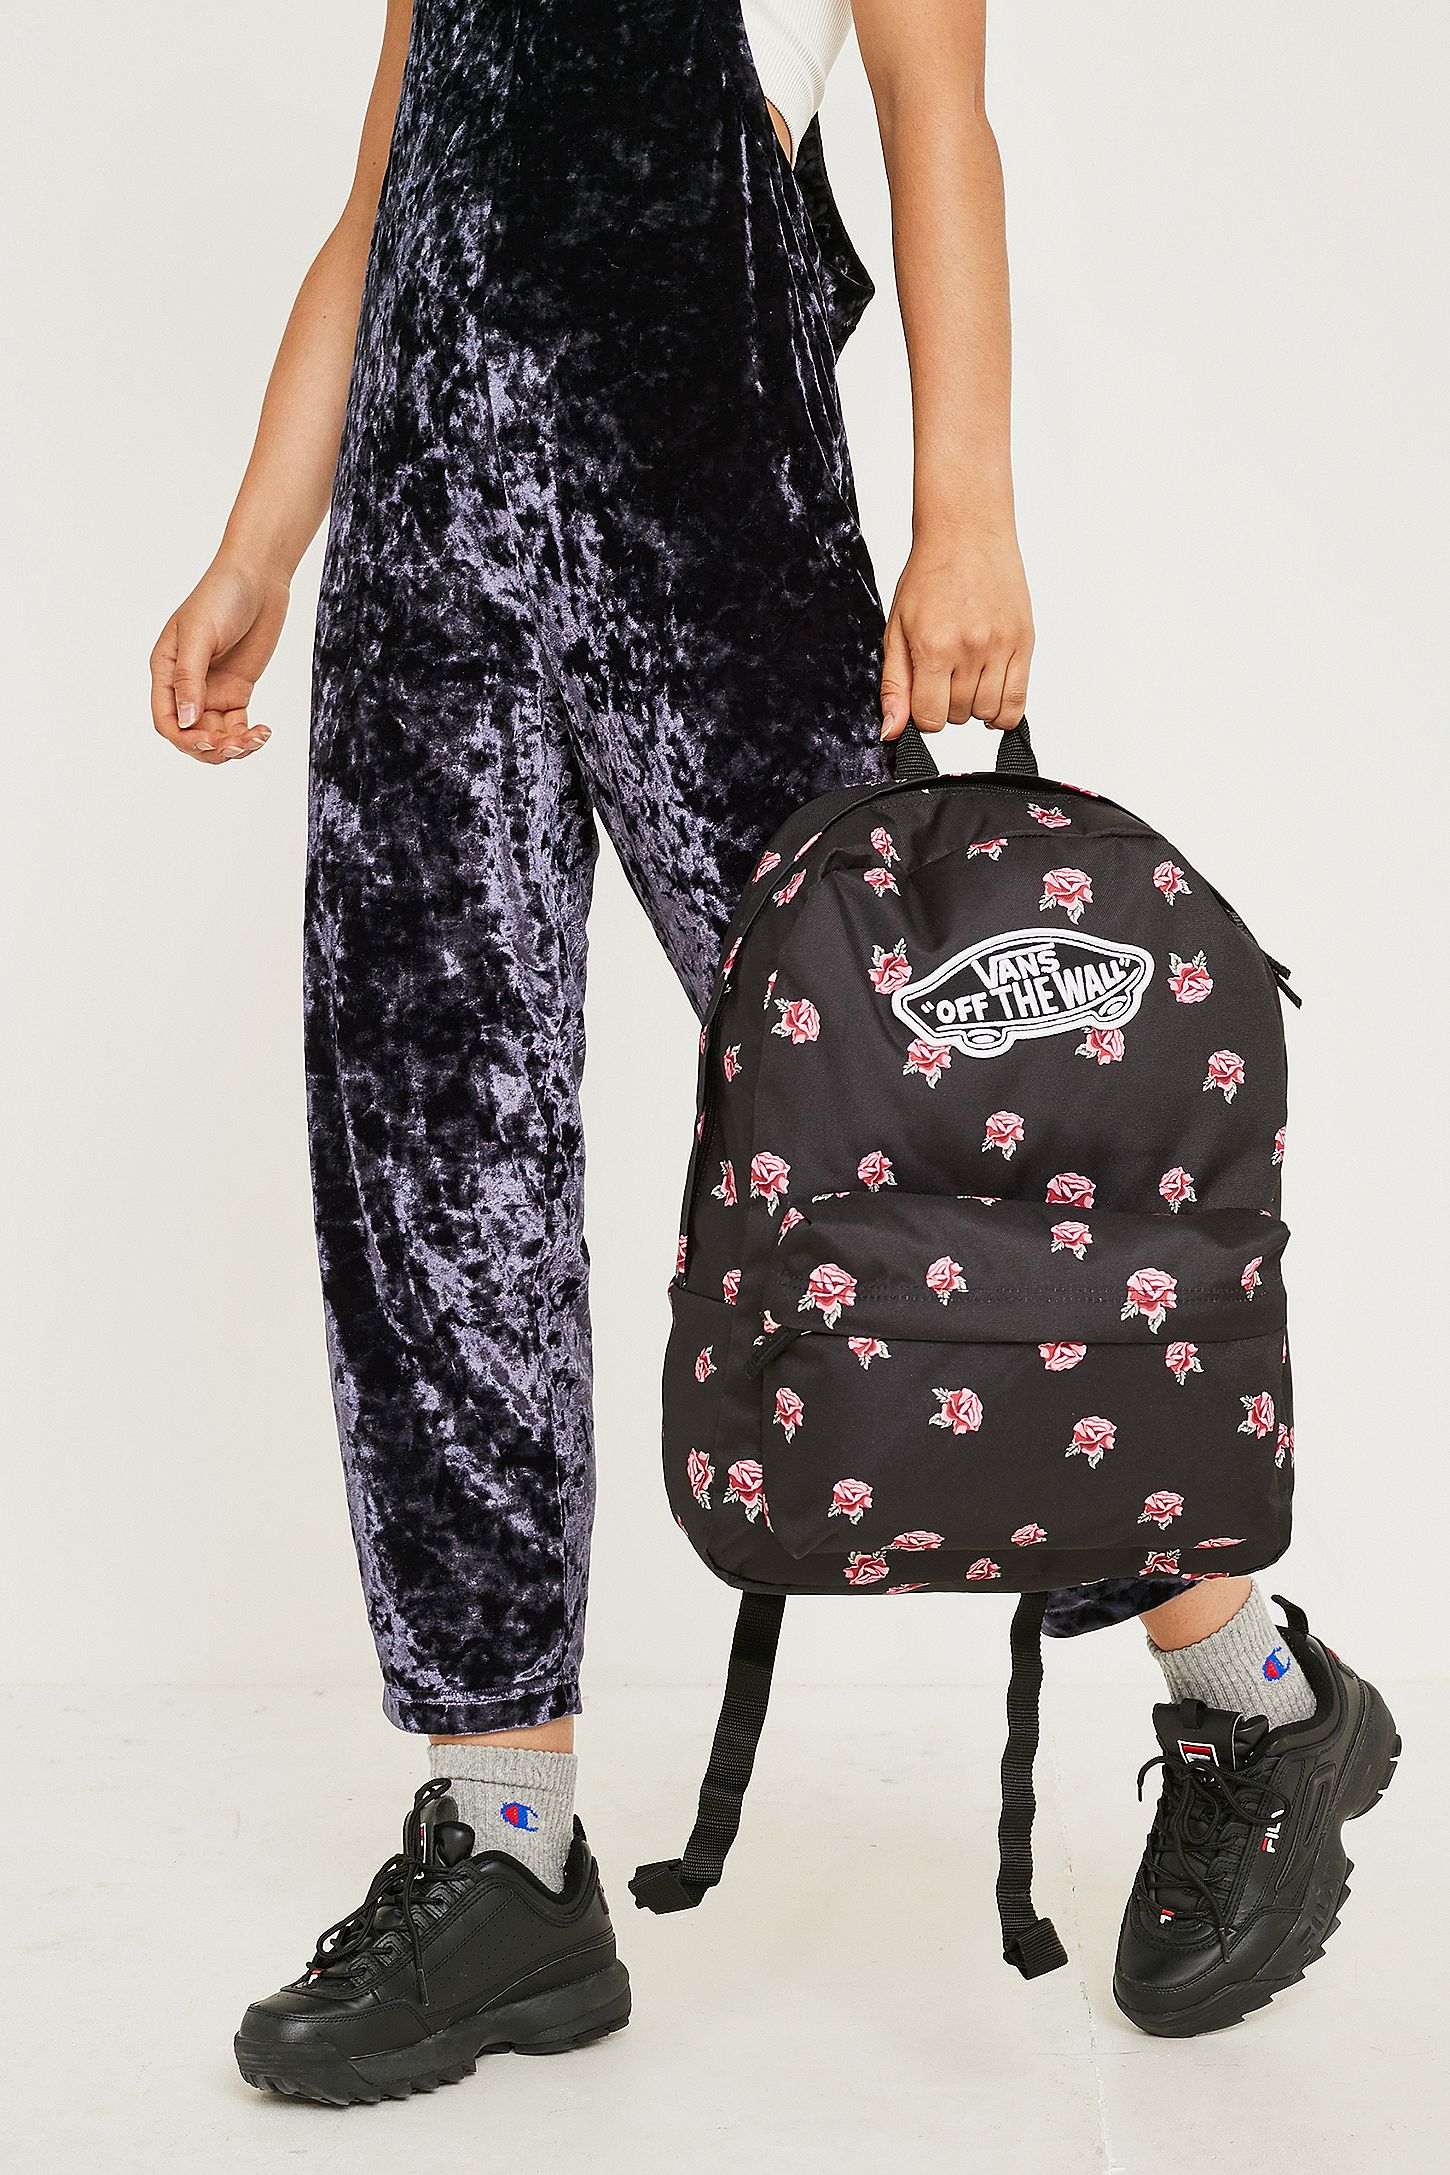 26fcfe30388 Vans Realm Rose Black Backpack. Click on image to zoom. Hover to zoom.  Double Tap to Zoom